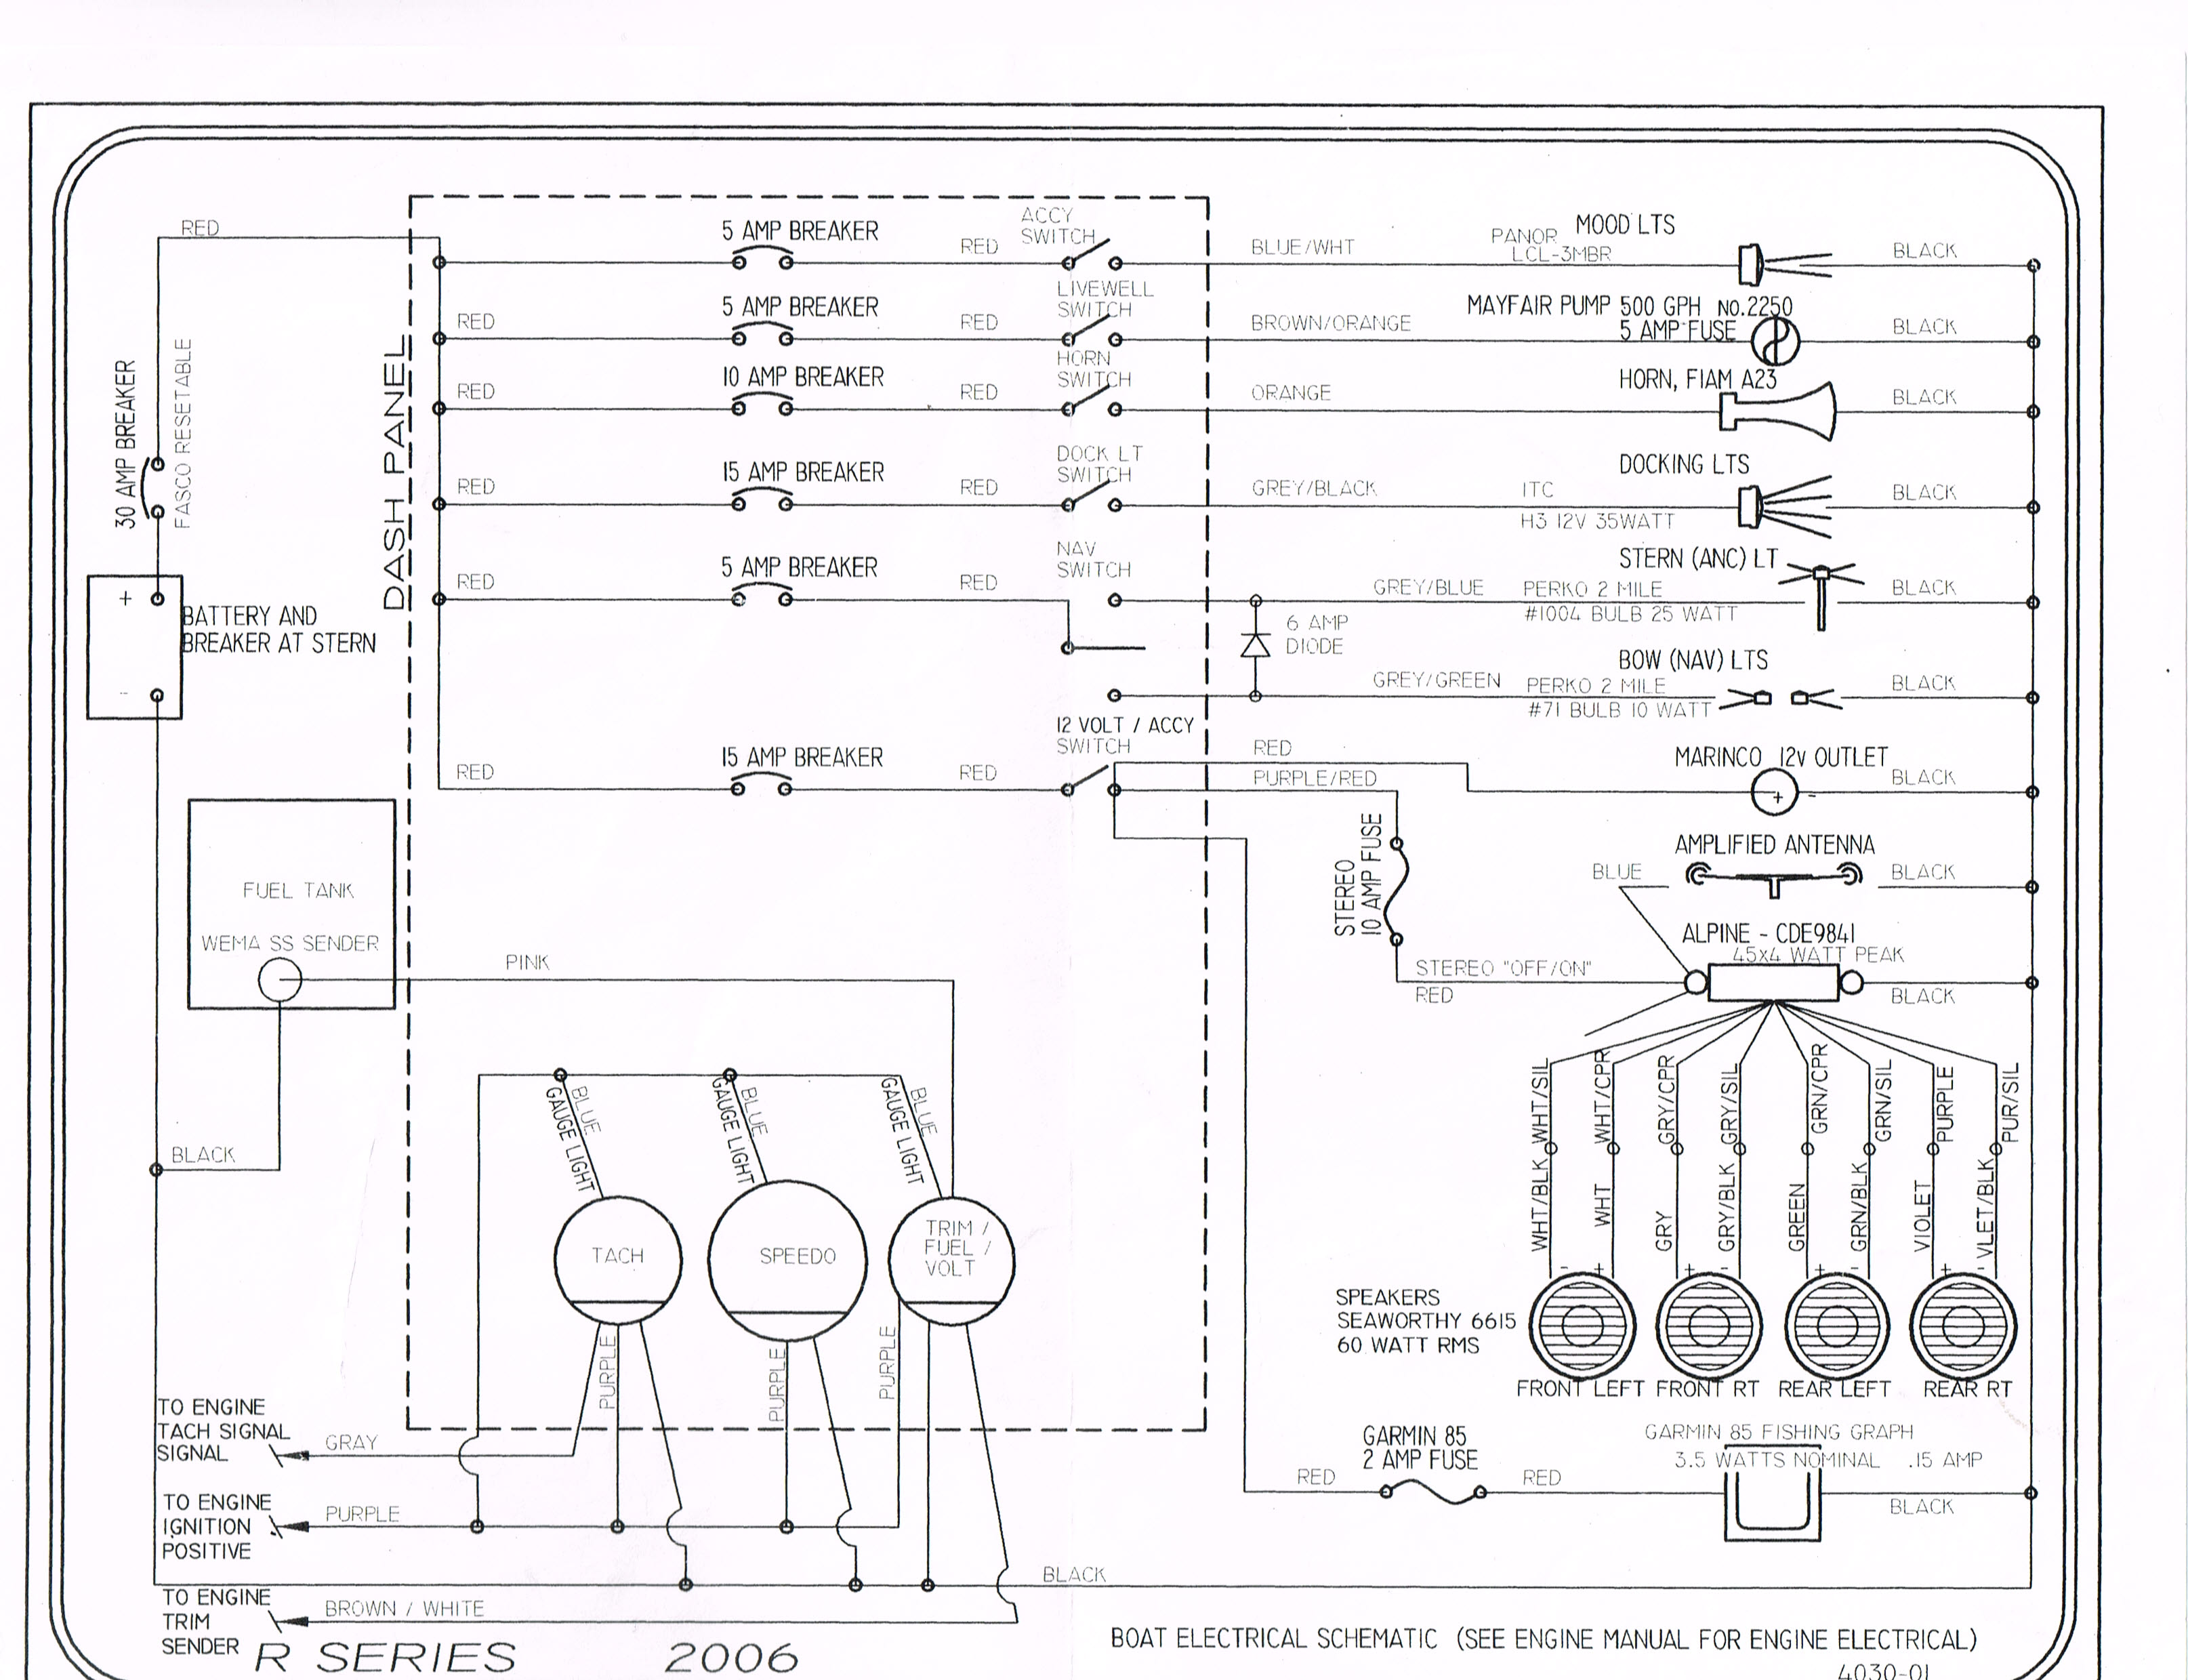 2007 Wiring Diagram